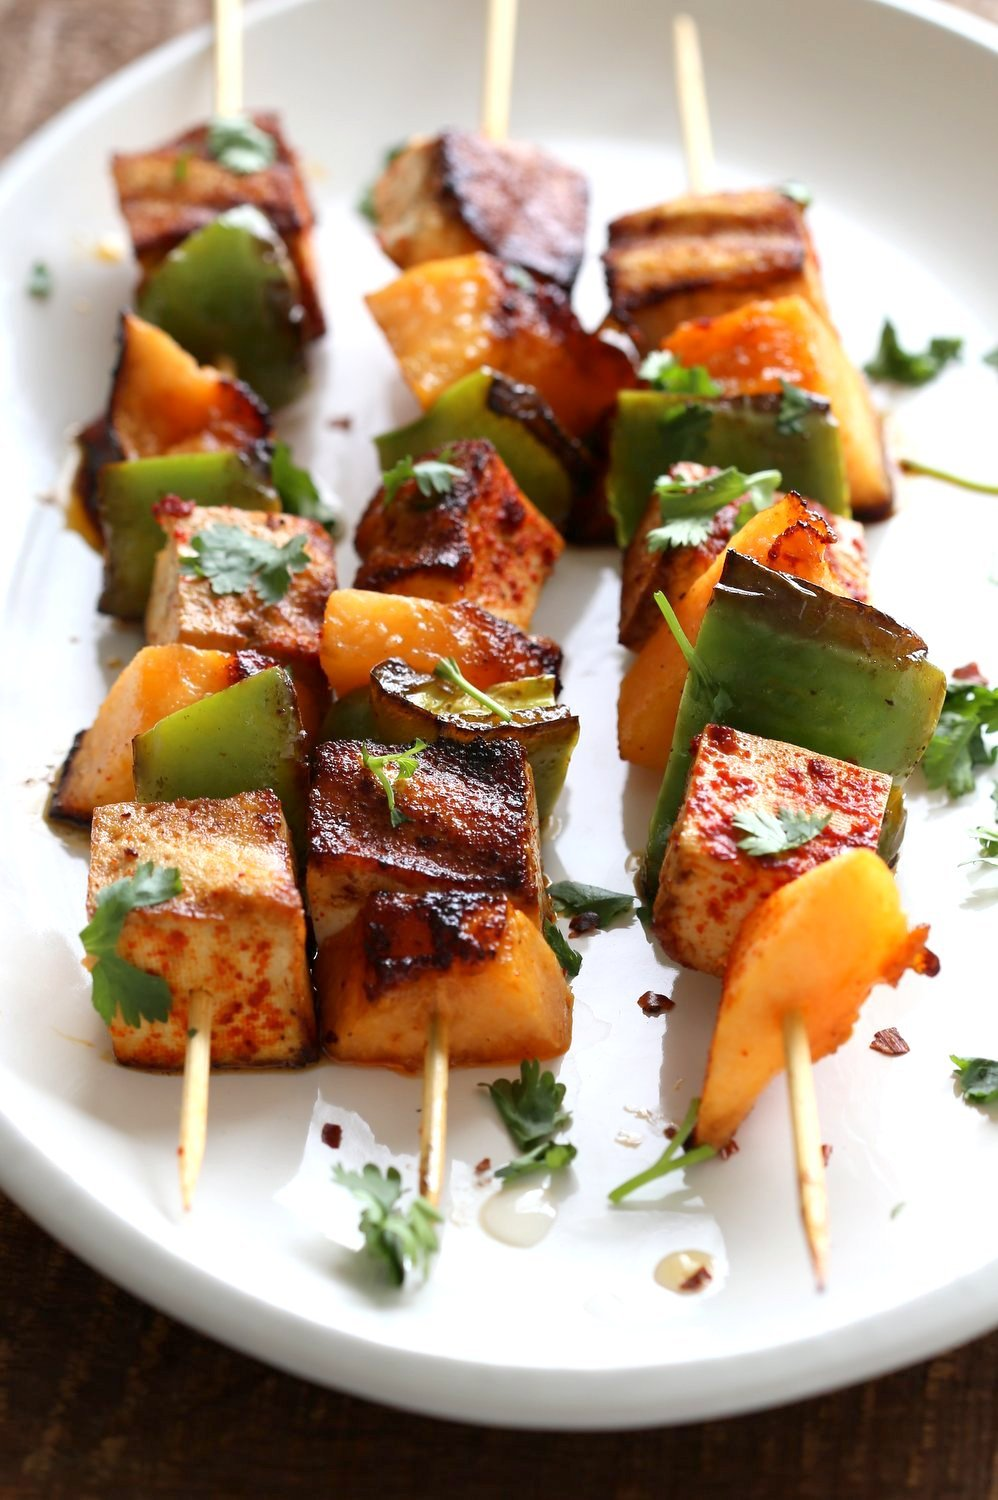 Gochugaru Baked Tofu, Melon, Pepper Veggie skewers with Chili Lime Sauce. Summer Vegetable kabobs.#Vegan #Glutenfree #Nutfree #Recipe. #veganricha